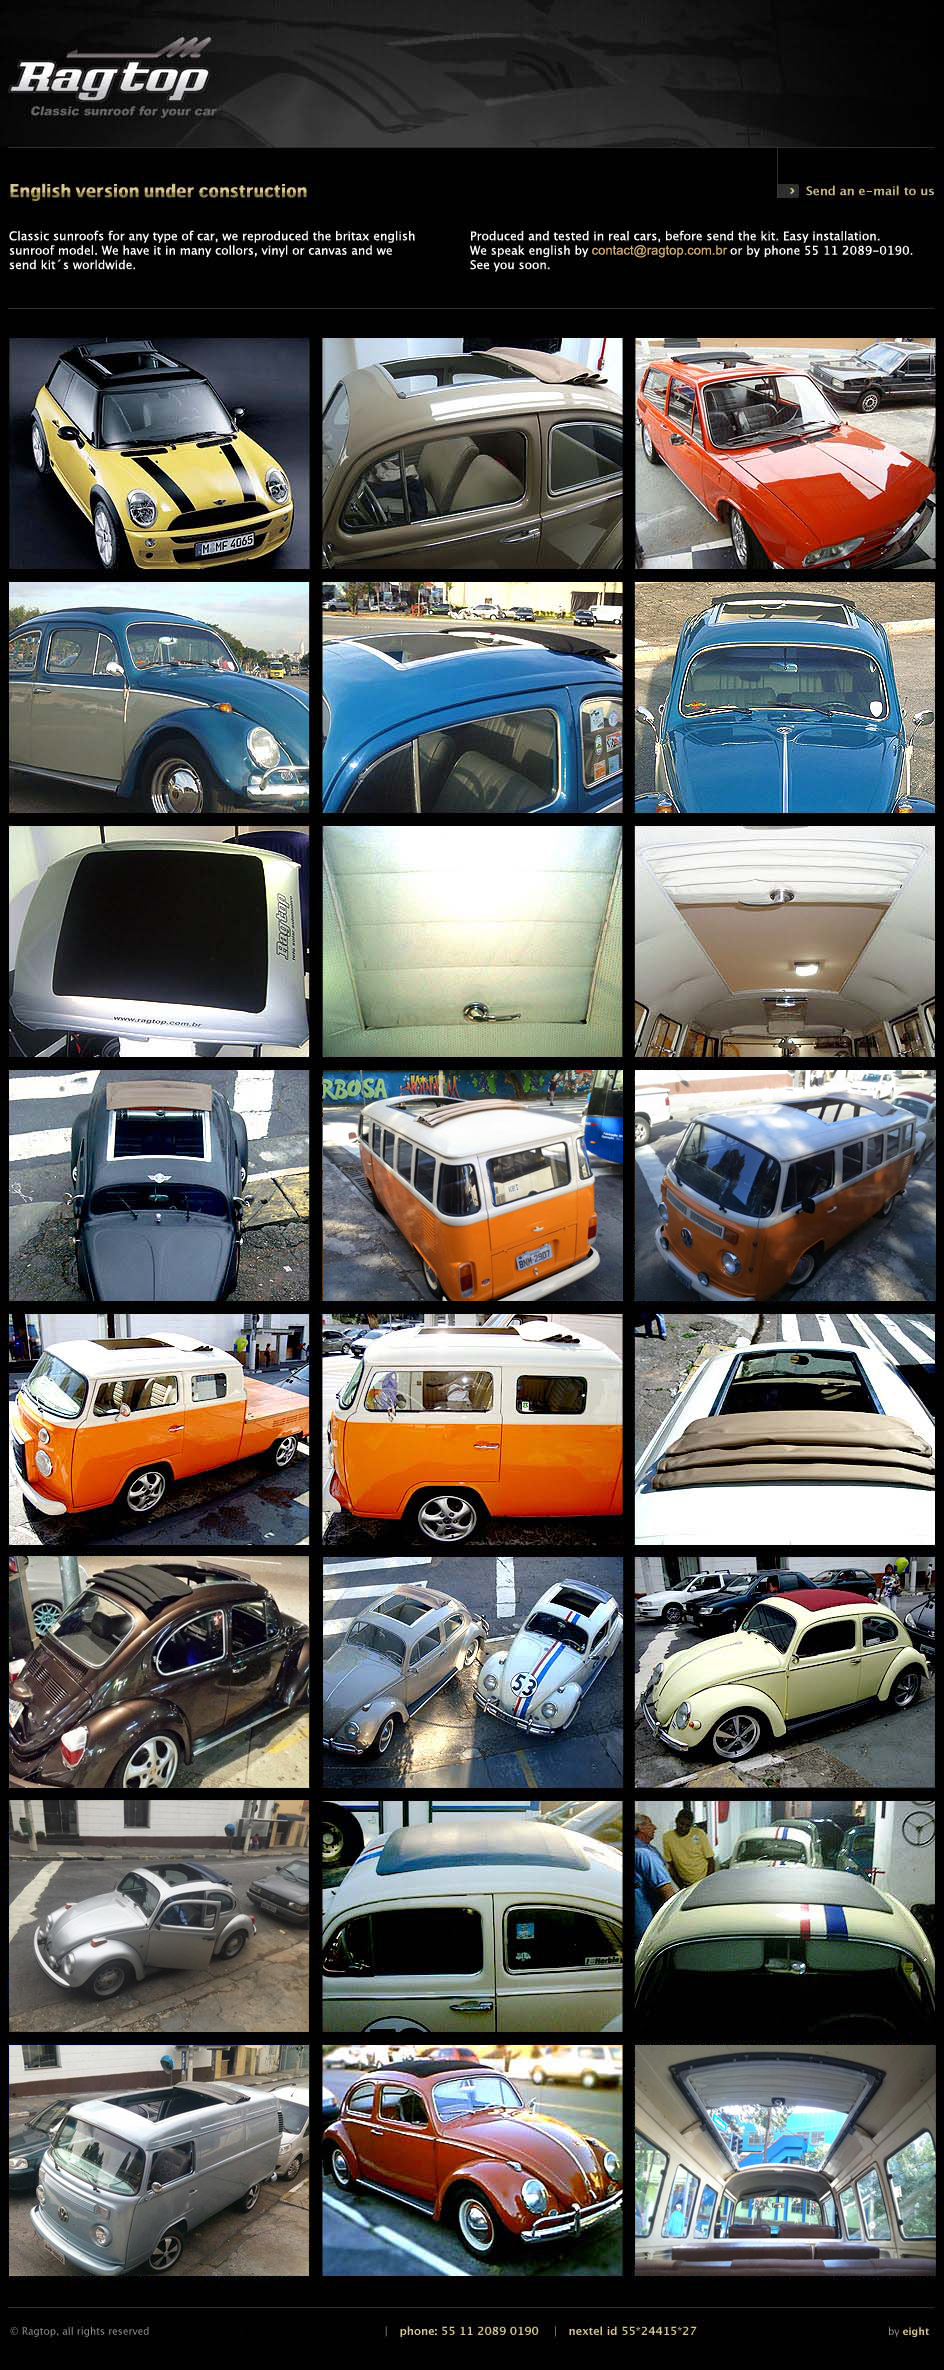 Ragtop | Classic sunroof for your car